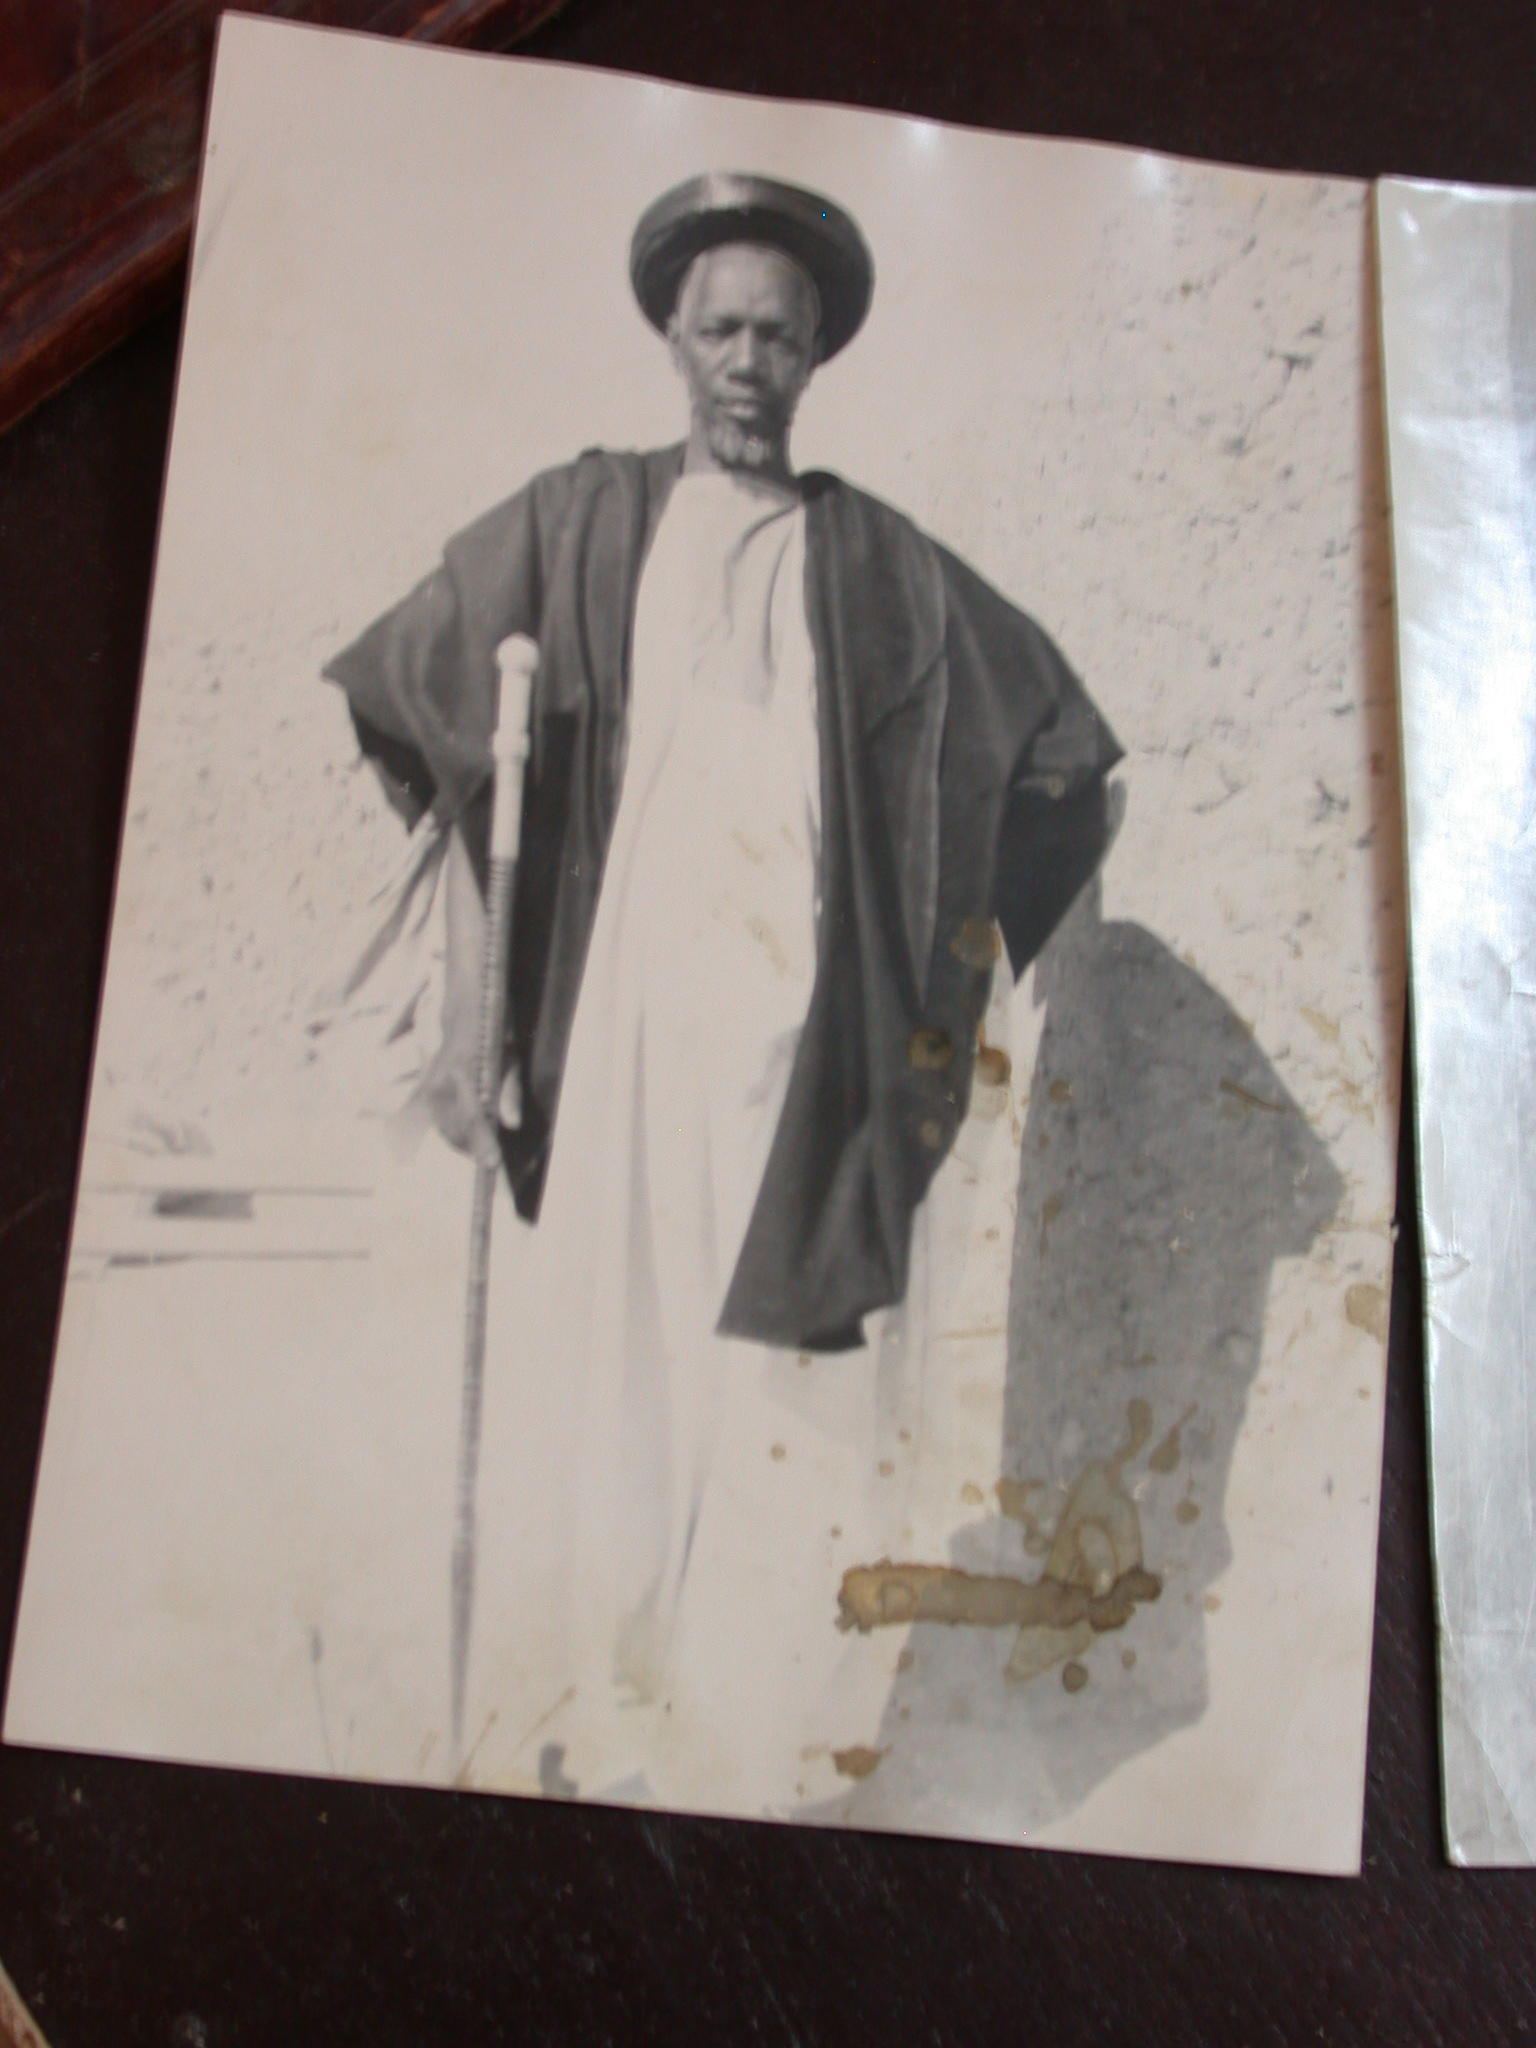 Photo of Man, Manuscript Library, Timbuktu, Mali